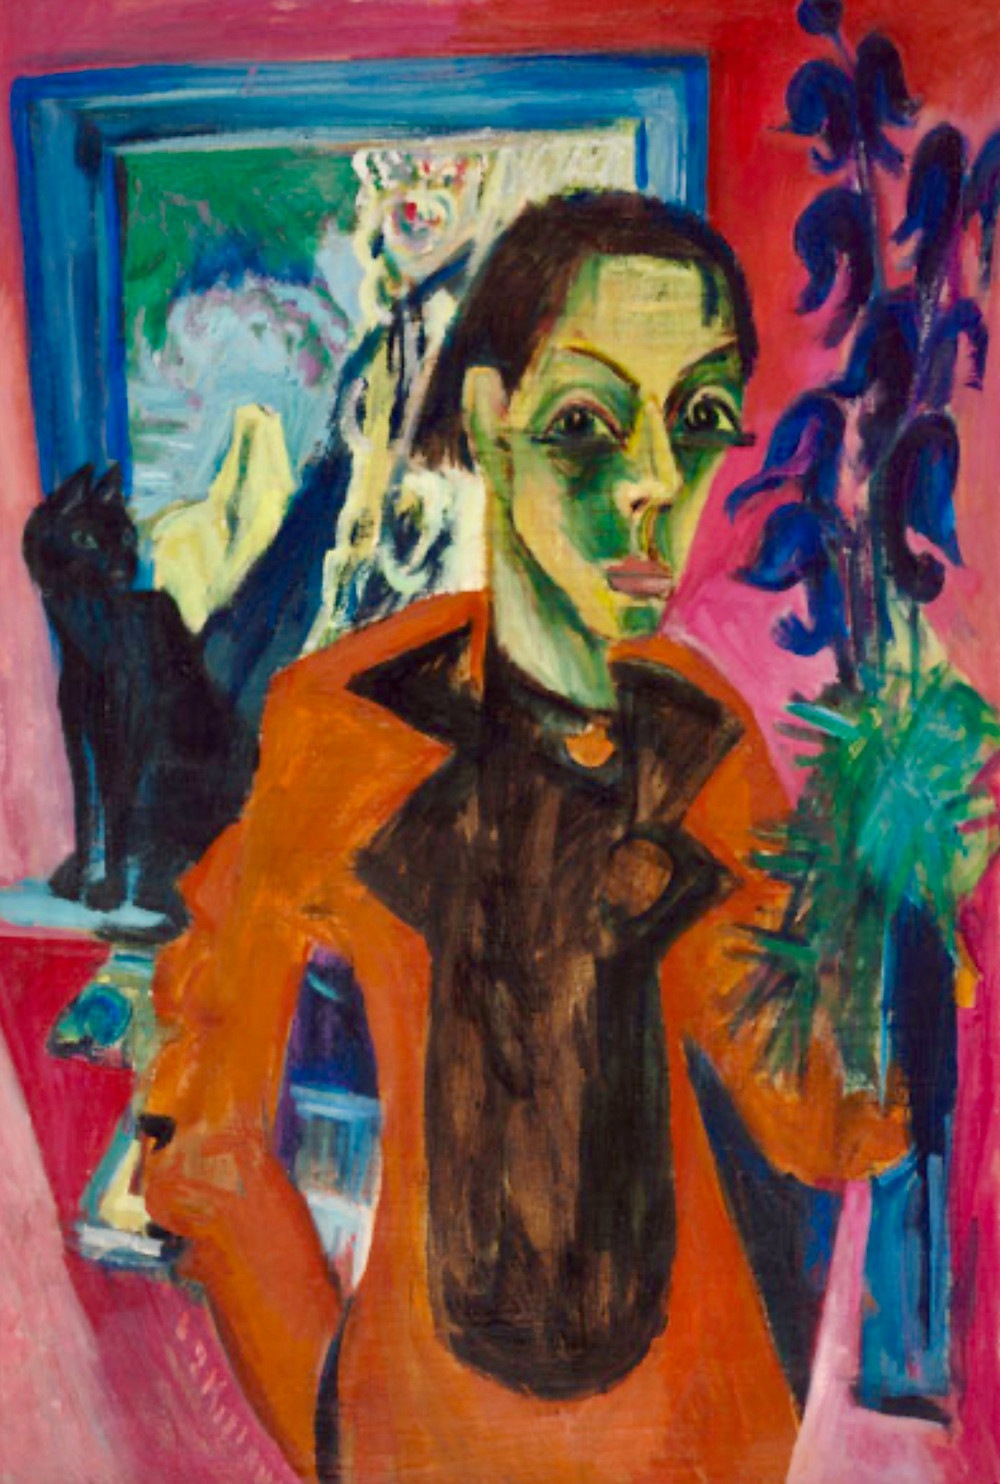 Ernst Ludwig Kirchner, Self Portrait with Cat, 1920